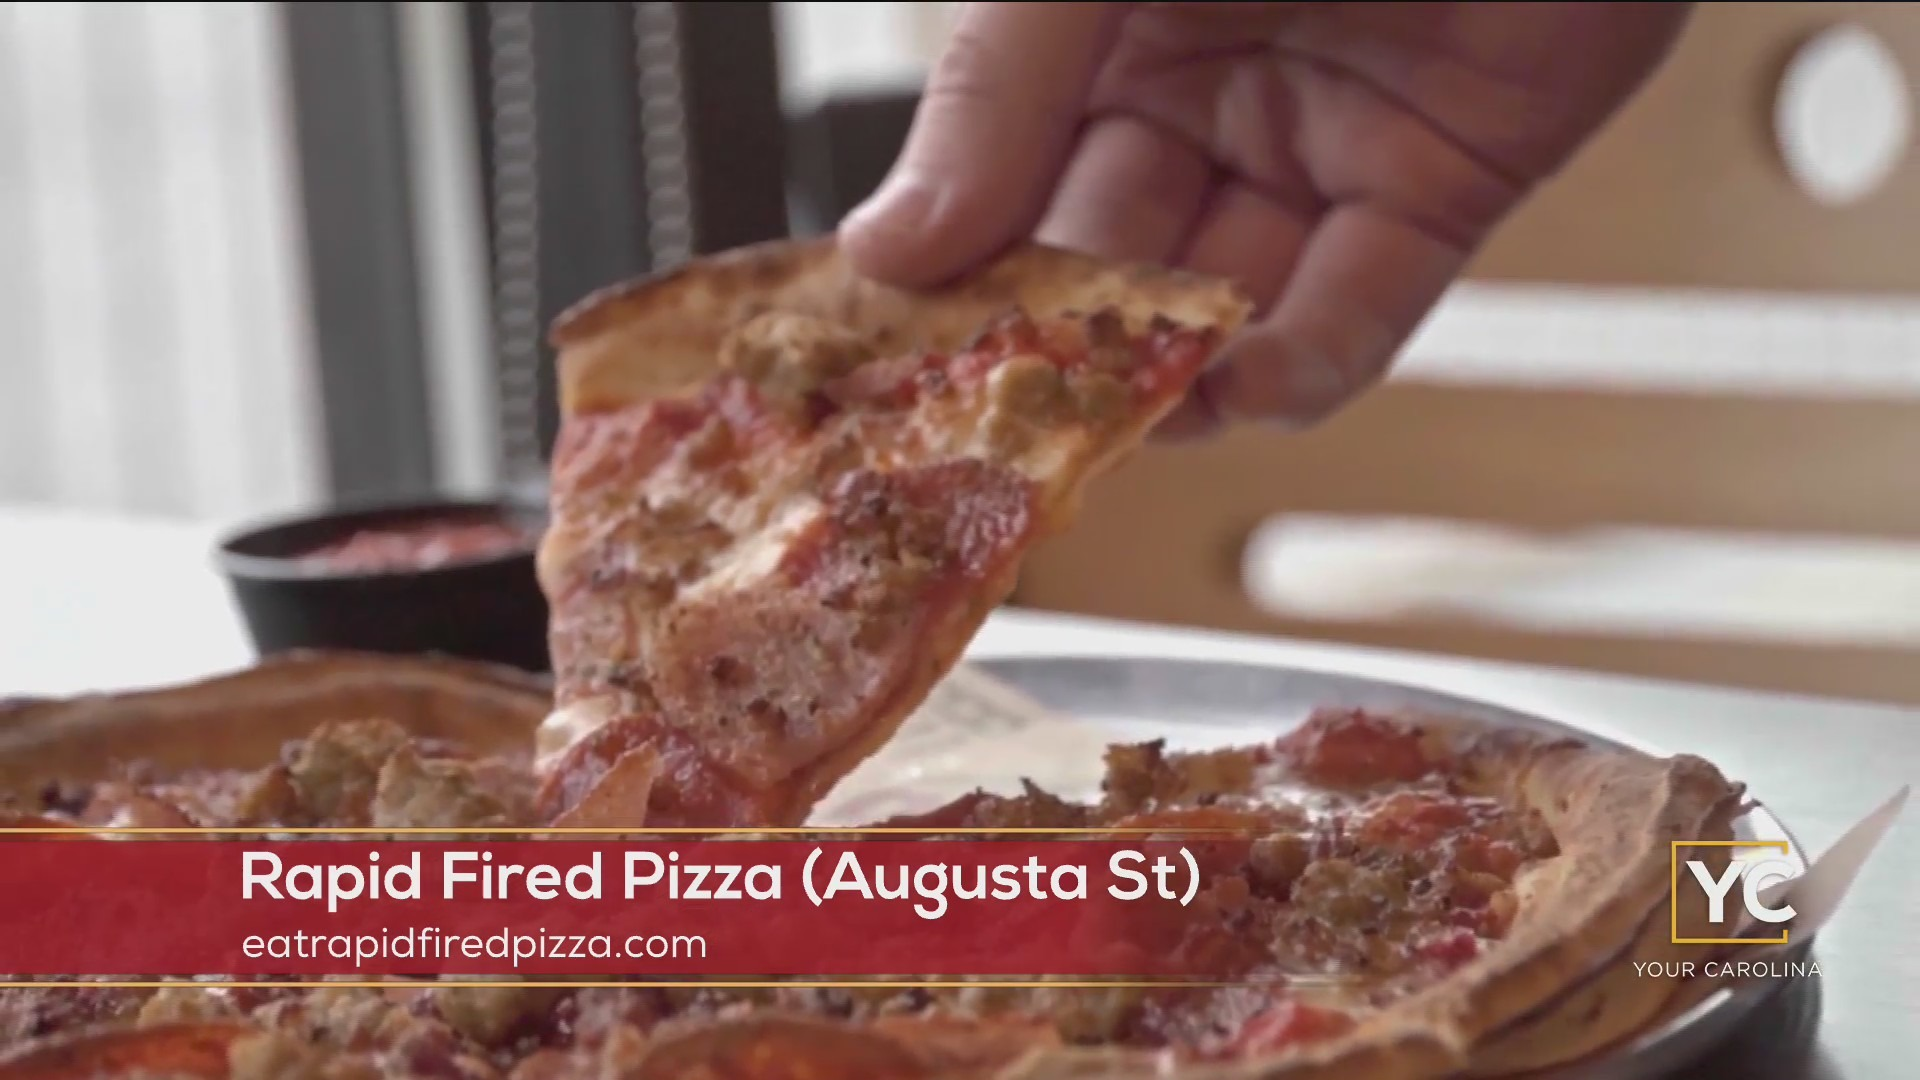 Rapid Fired Pizza on Augusta St Offering Online Ordering